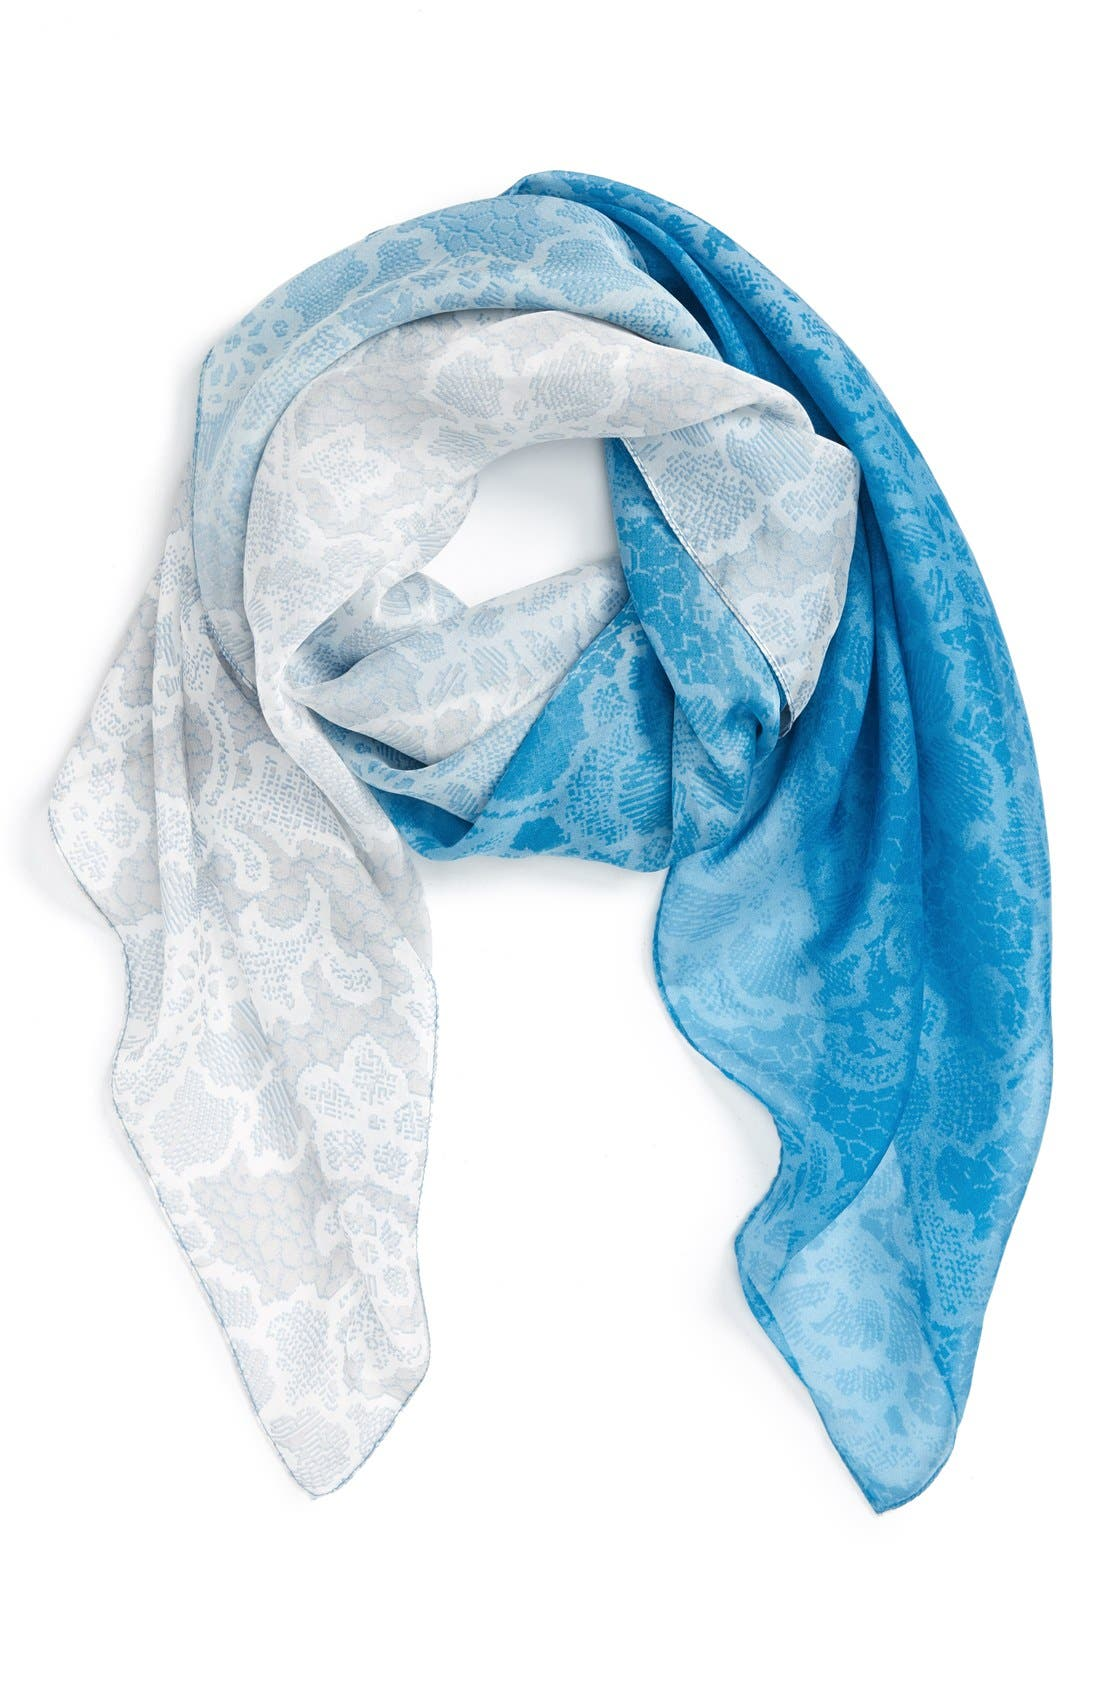 Alternate Image 1 Selected - Nordstrom 'Lace Haze' Silk Chiffon Square Scarf